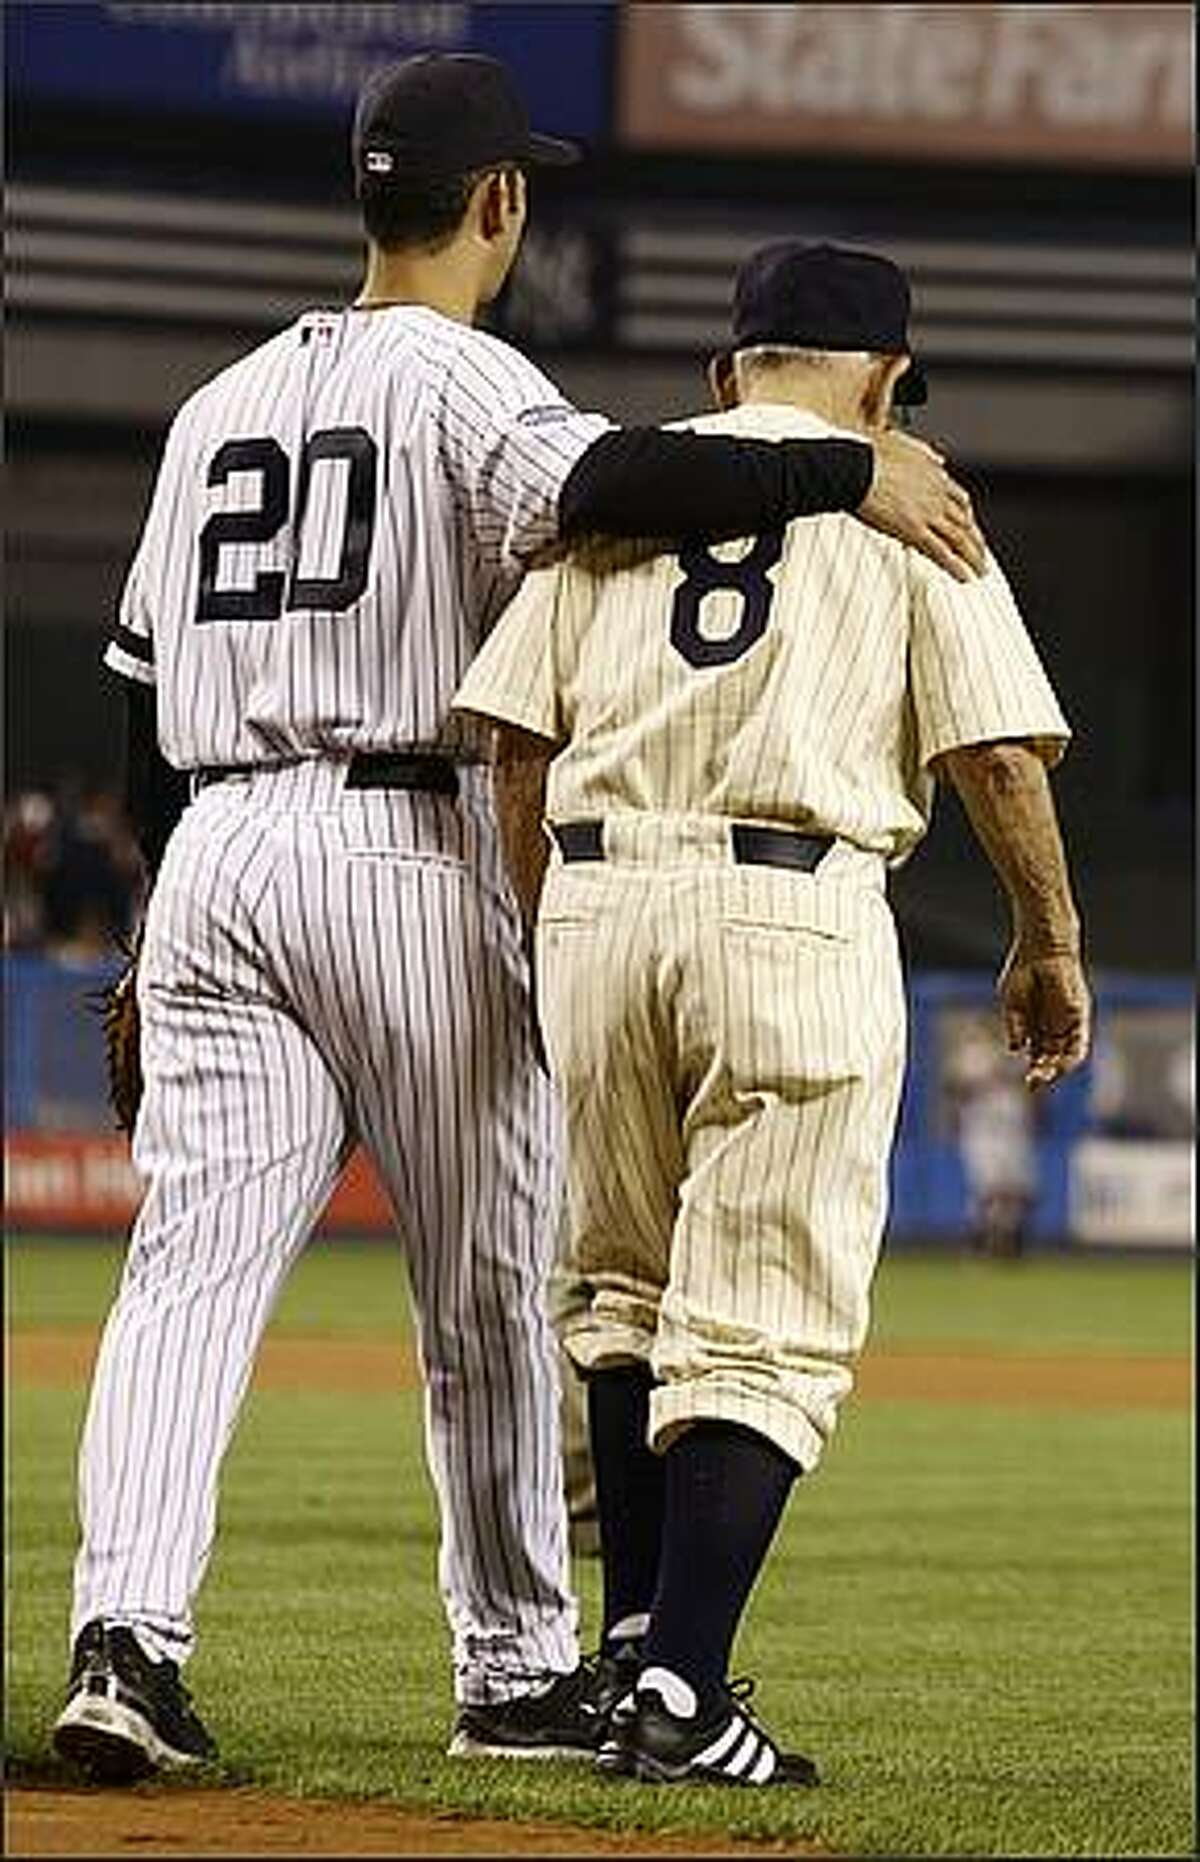 New York Yankees catcher Jorge Posada, left, walks off the field with former Yankees catcher Yogi Berra after ceremonies at Yankee Stadium in New York on Sunday, Sept. 21, 2008. The Yankees went on to face the Baltimore Orioles in what will likely be the last baseball game played at the stadium. (AP Photo/Kathy Willens)